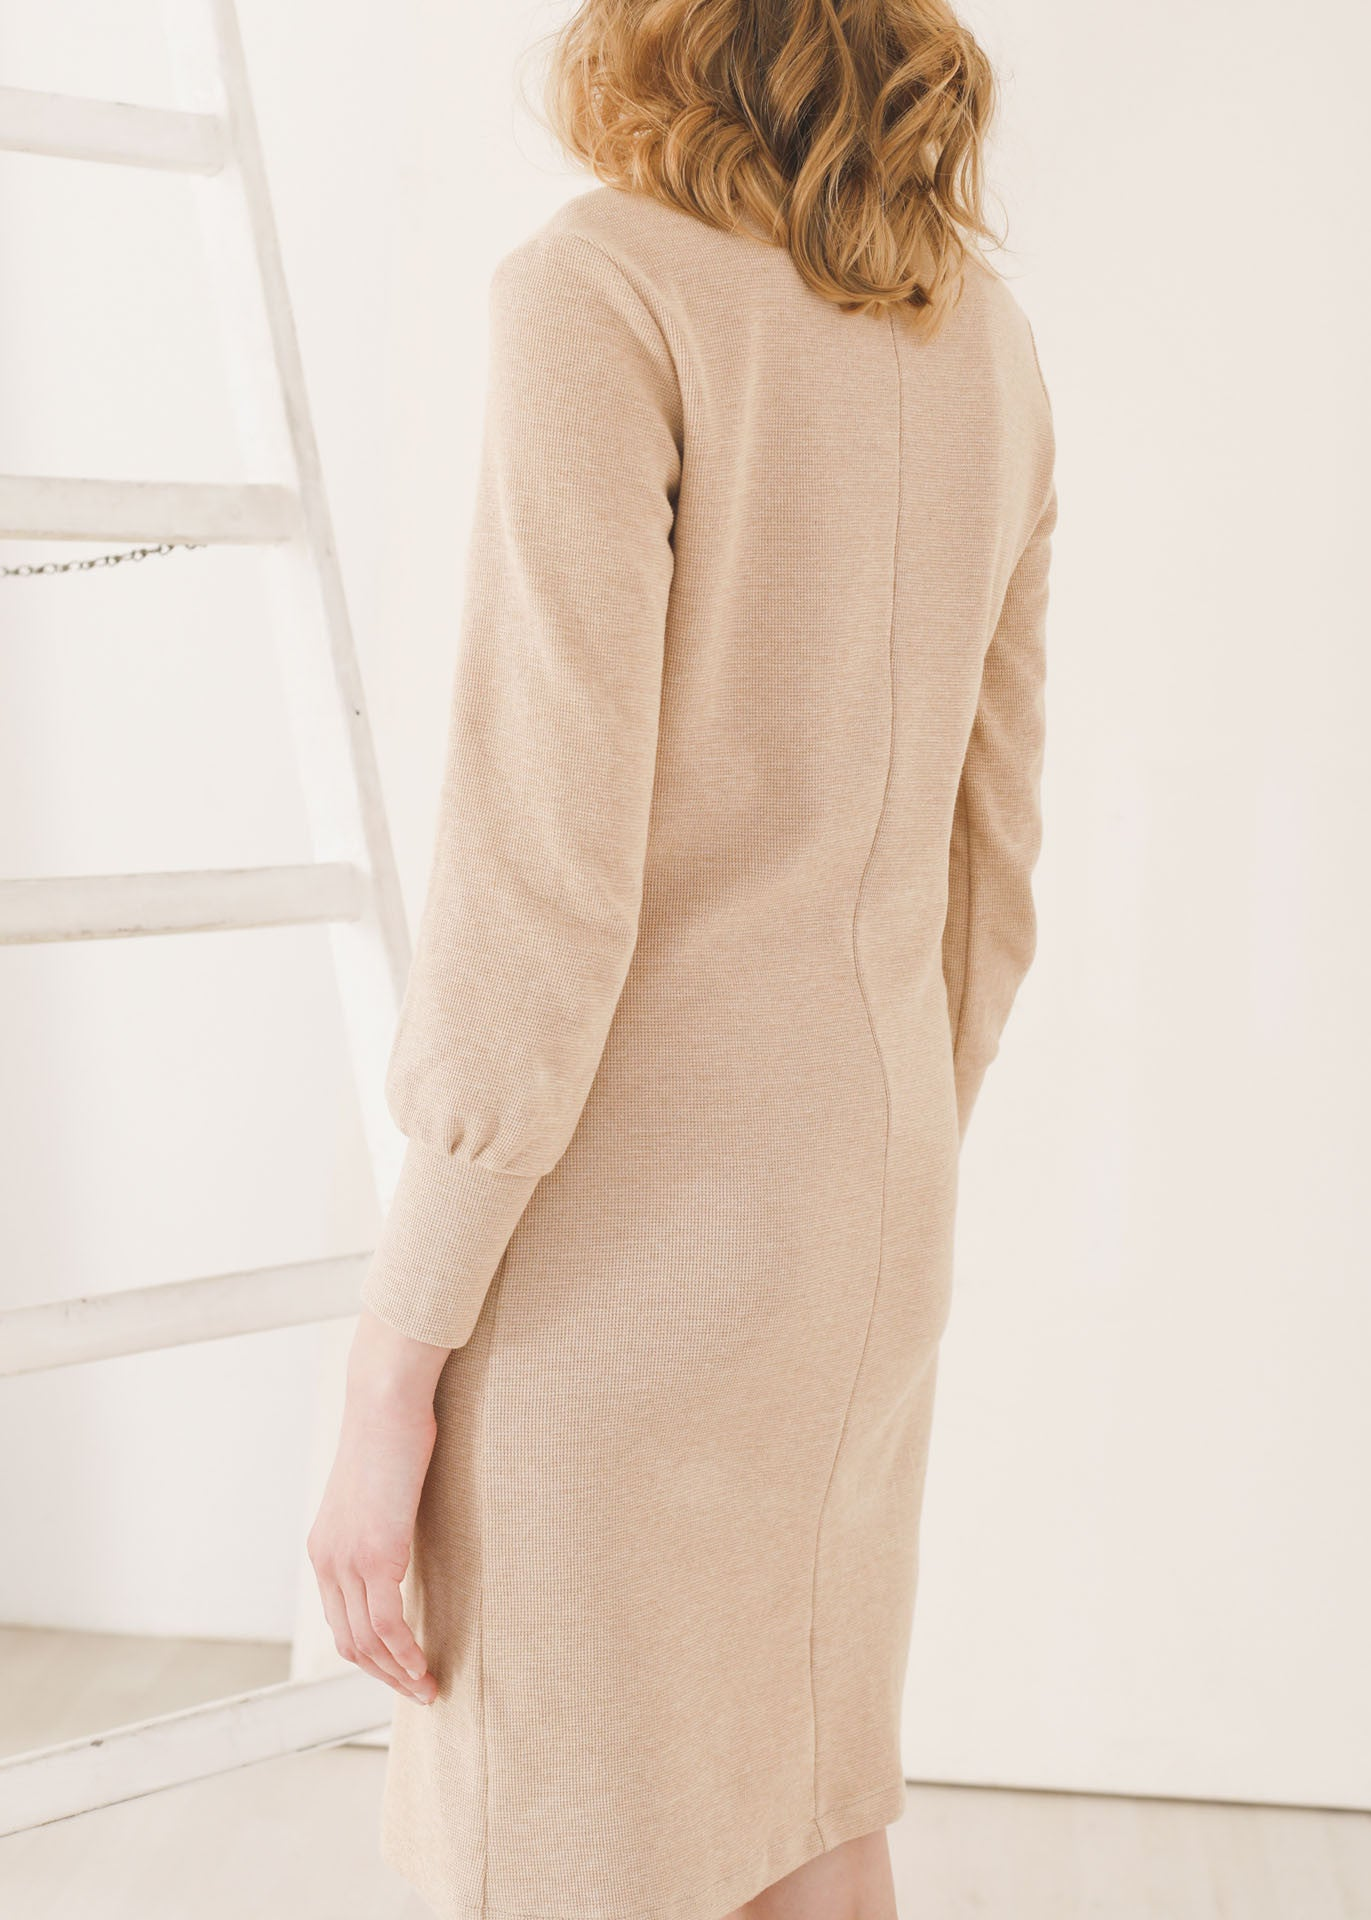 Tana - Sweater Dress in Camel